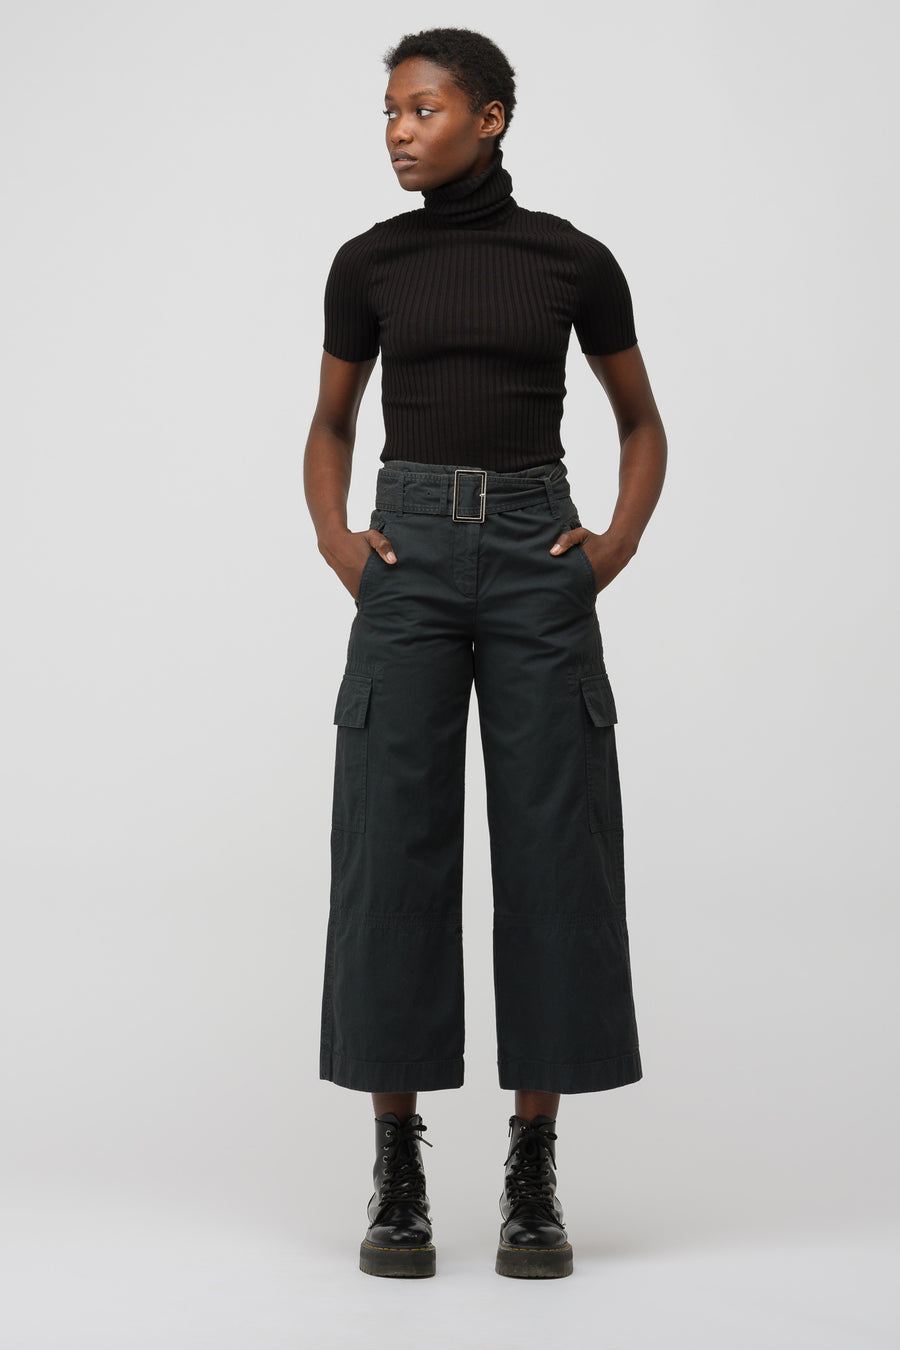 Acne Studios Cargo Pants in Anthracite Grey - Notre